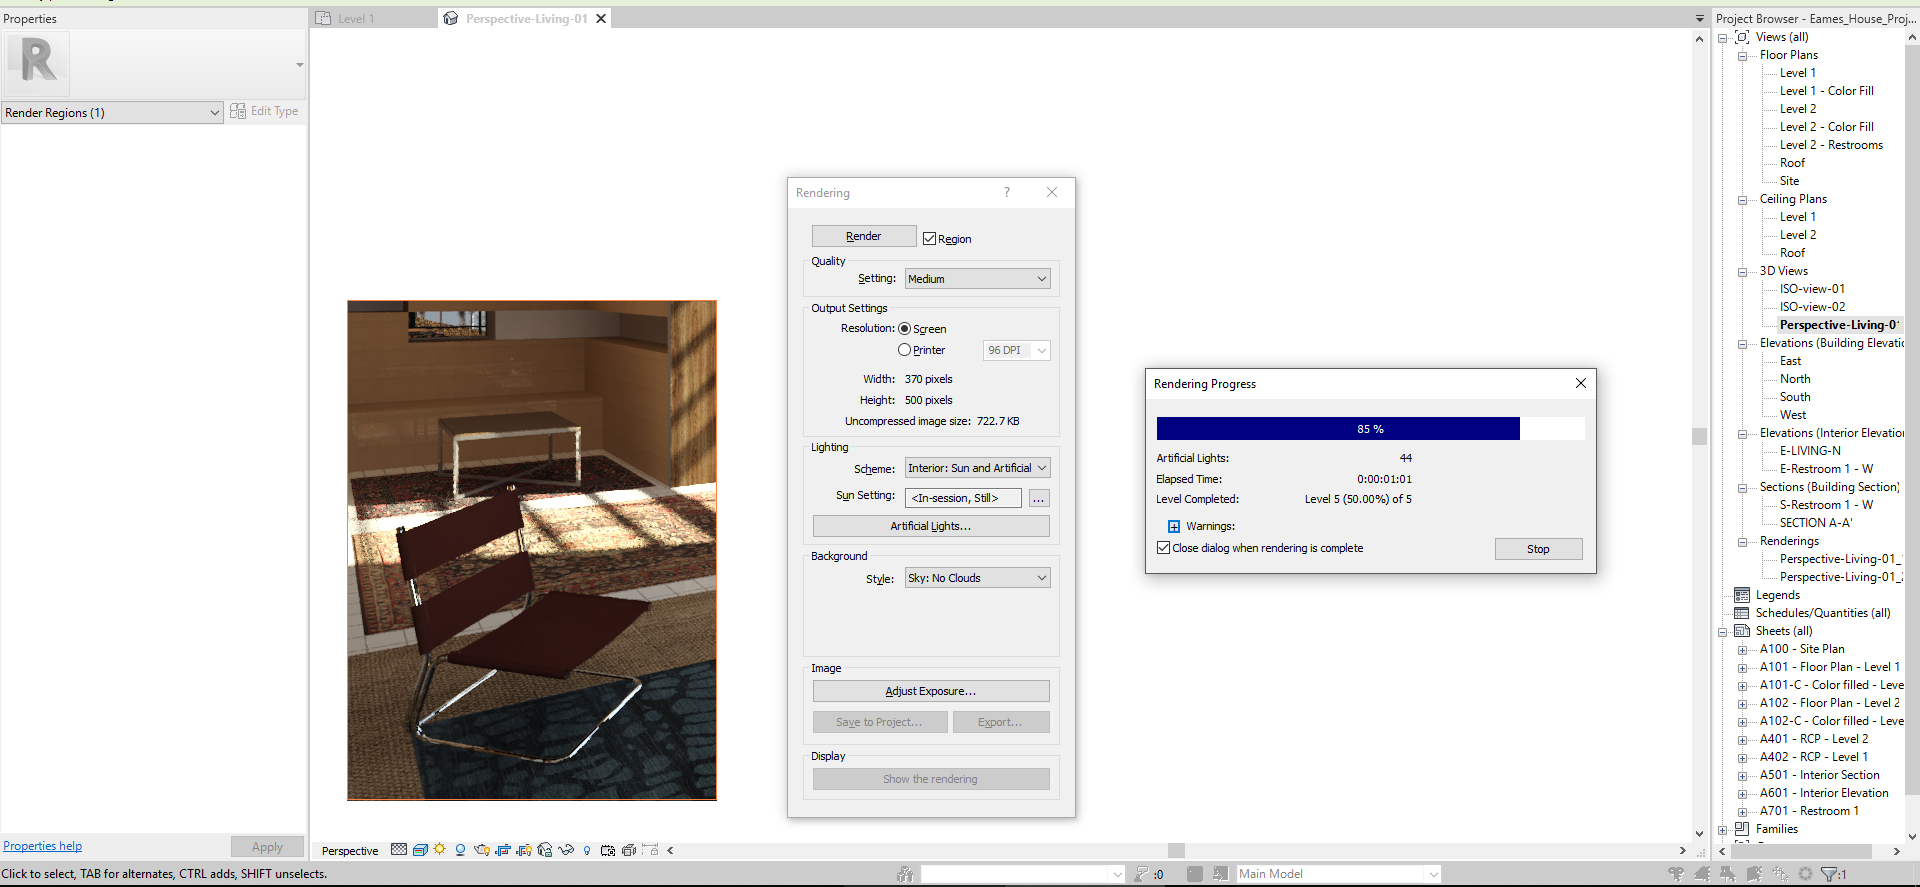 It shows the processing of region render.